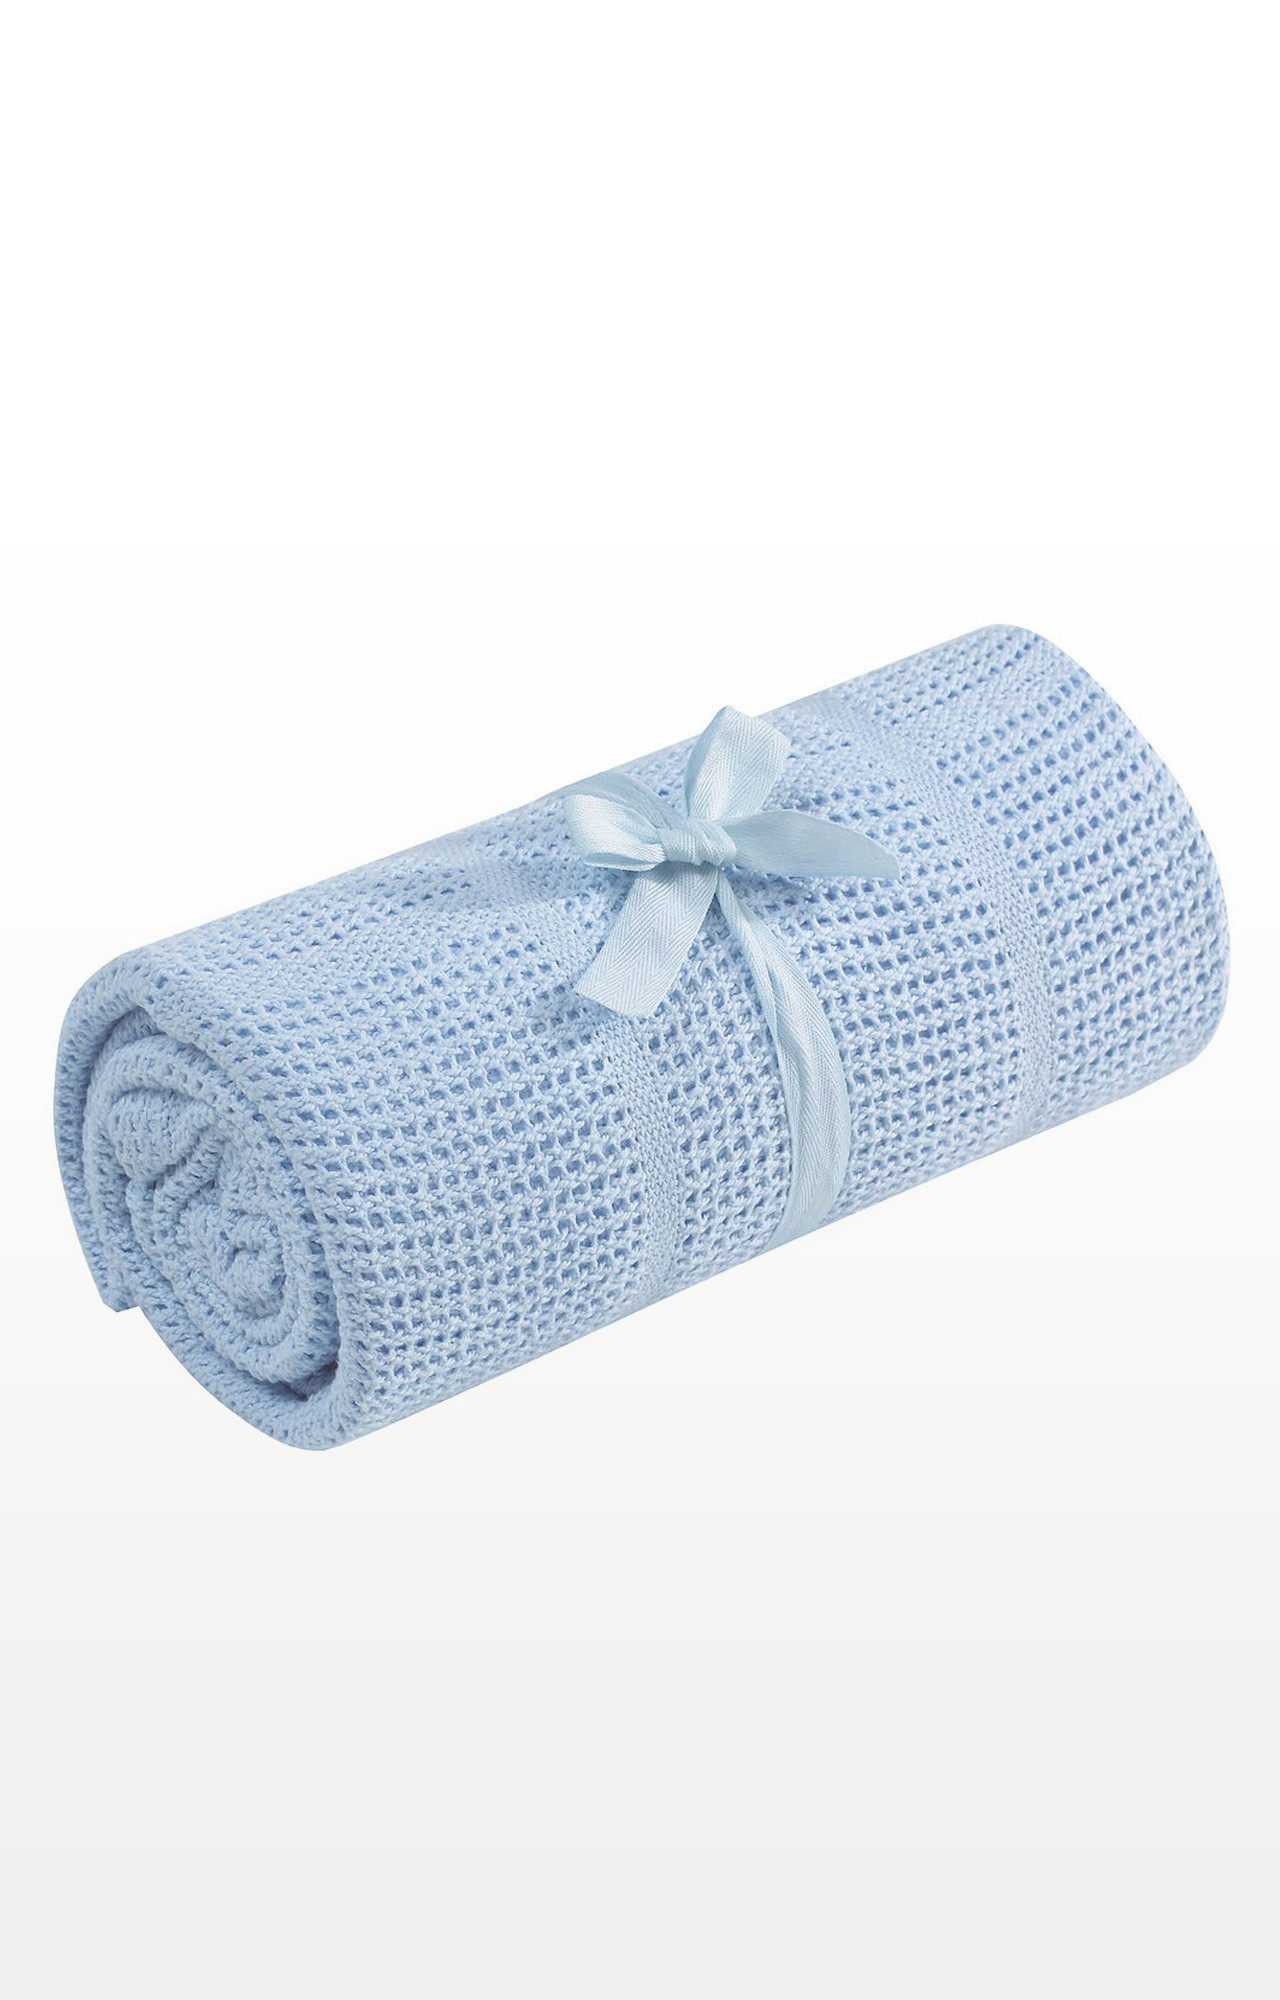 Mothercare | Blue Cot Or Cot Bed Cellular Cotton Blanket